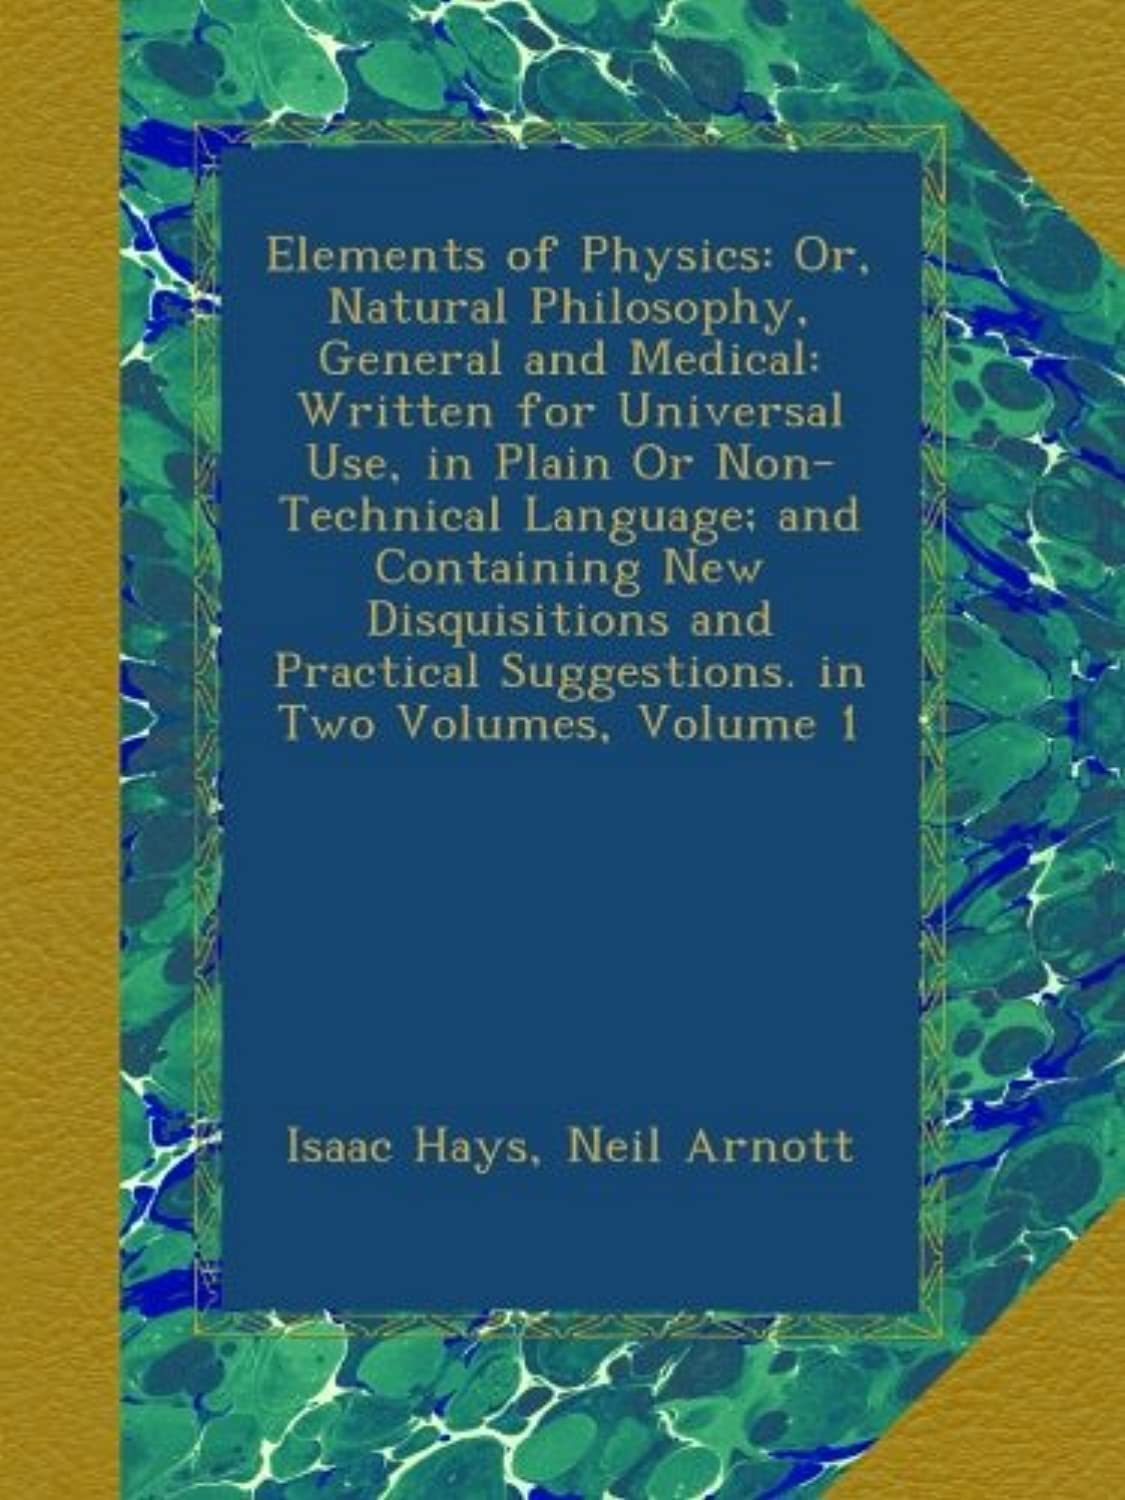 Elements of Physics: Or, Natural Philosophy, General and Medical: Written for Universal Use, in Plain Or Non-Technical Language; and Containing New Disquisitions and Practical Suggestions. in Two Volumes, Volume 1